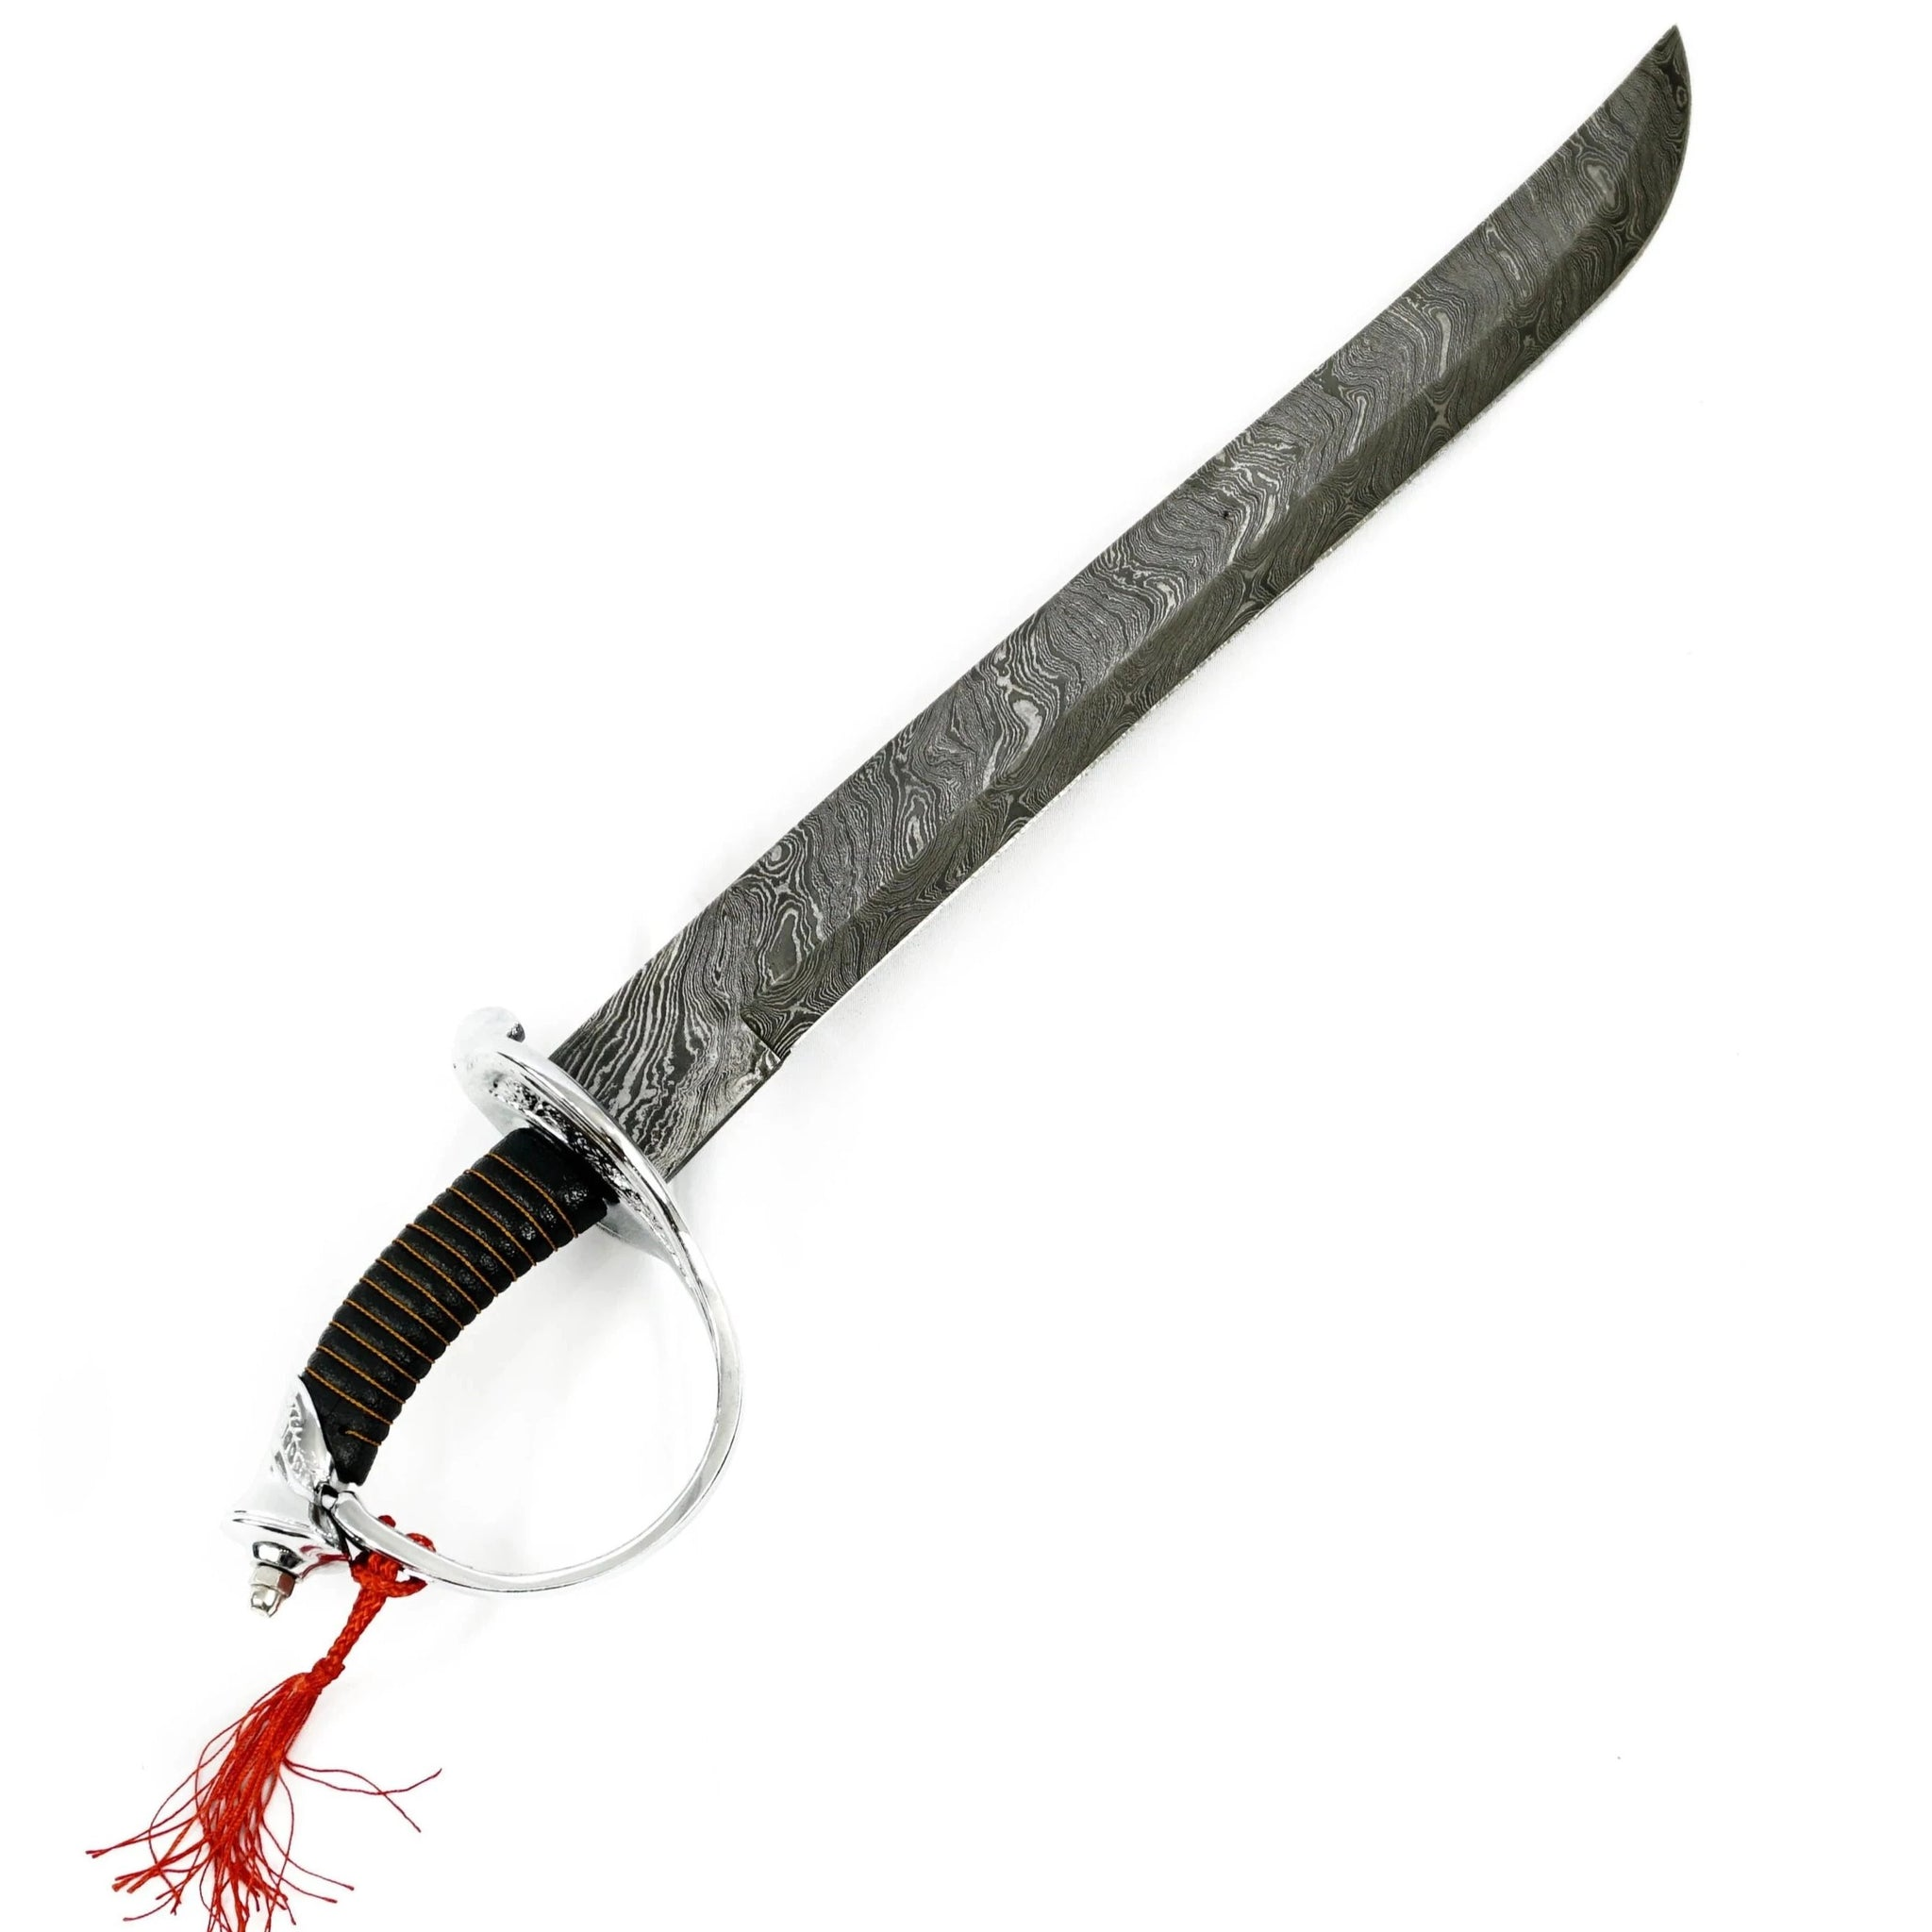 "Cutlass - High Carbon Damascus Steel Sword-23"" Battle Ready Pirate Sword- Swashbuckling Sword"